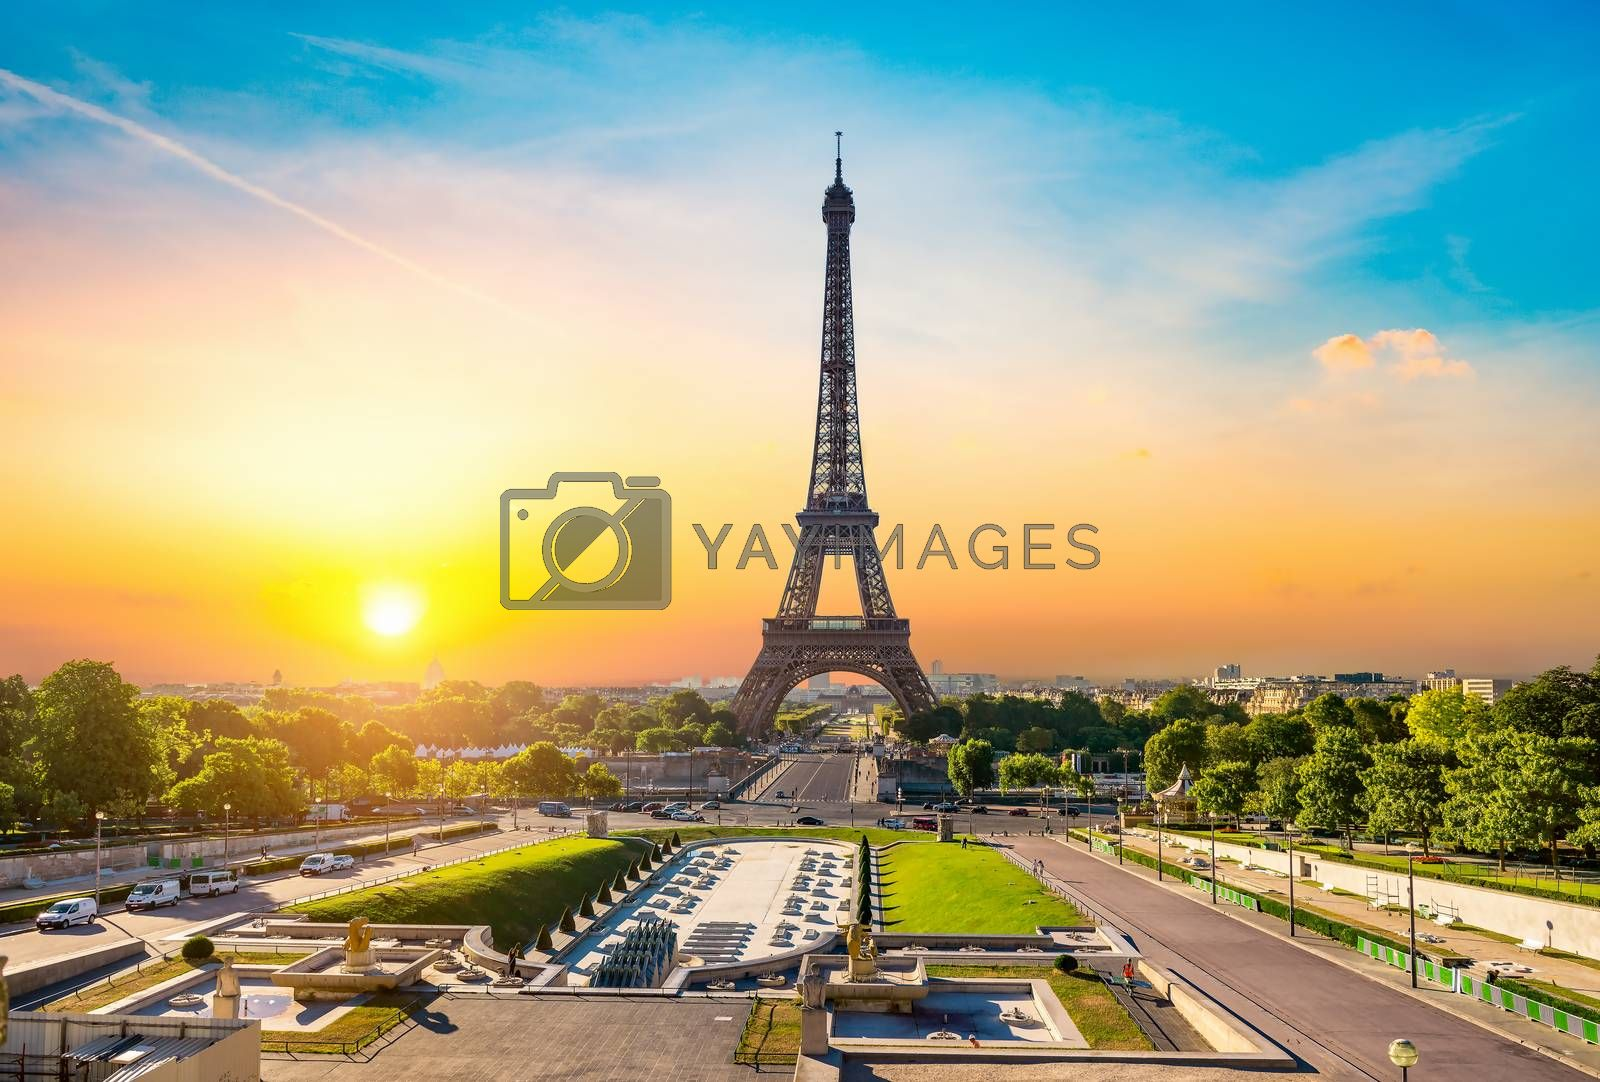 Eiffel Tower and fountains near it at dawn in Paris, France